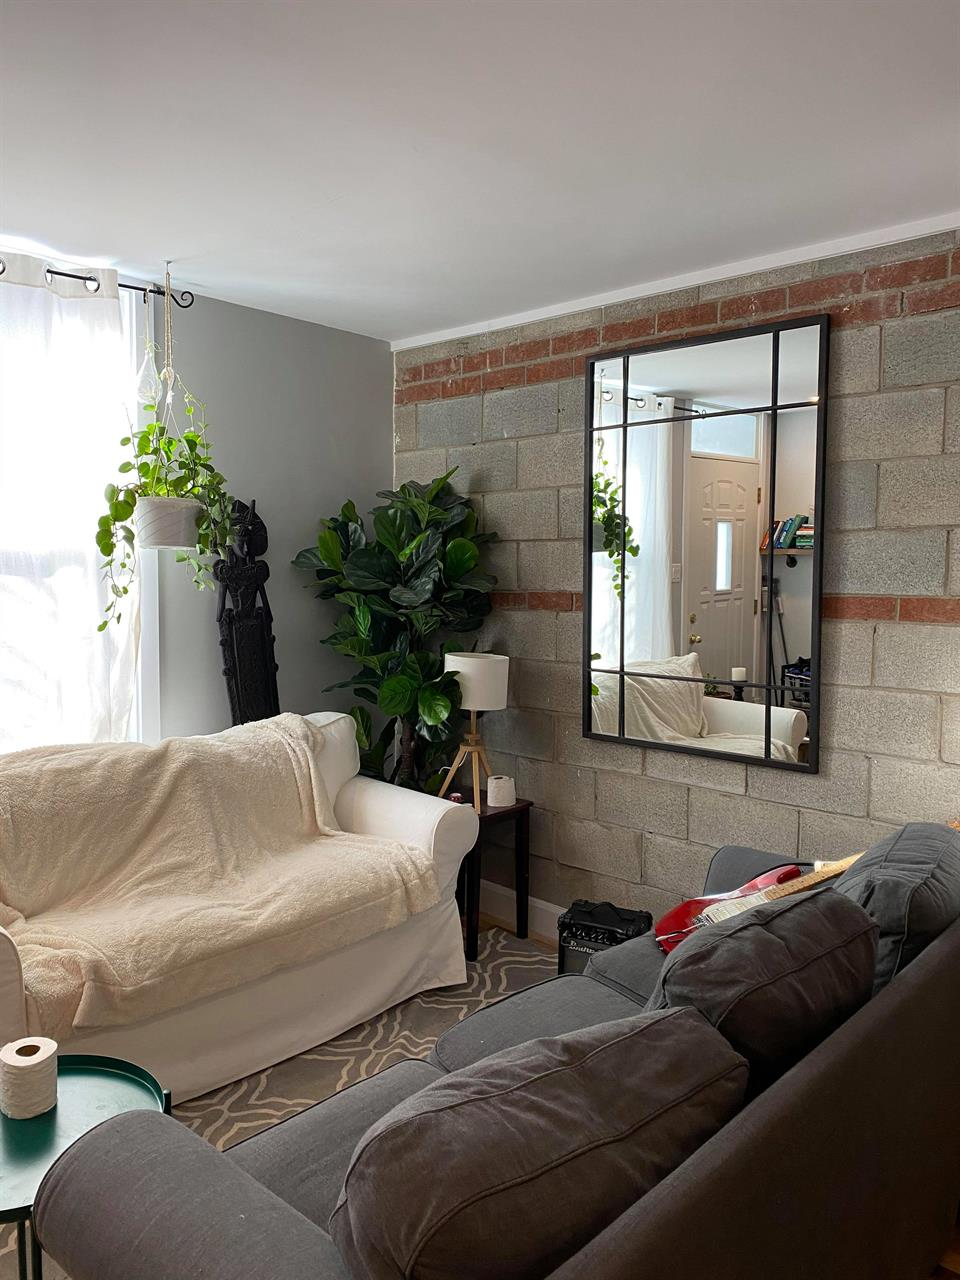 Beautiful renovated open concept bright spacious 1 bedroom